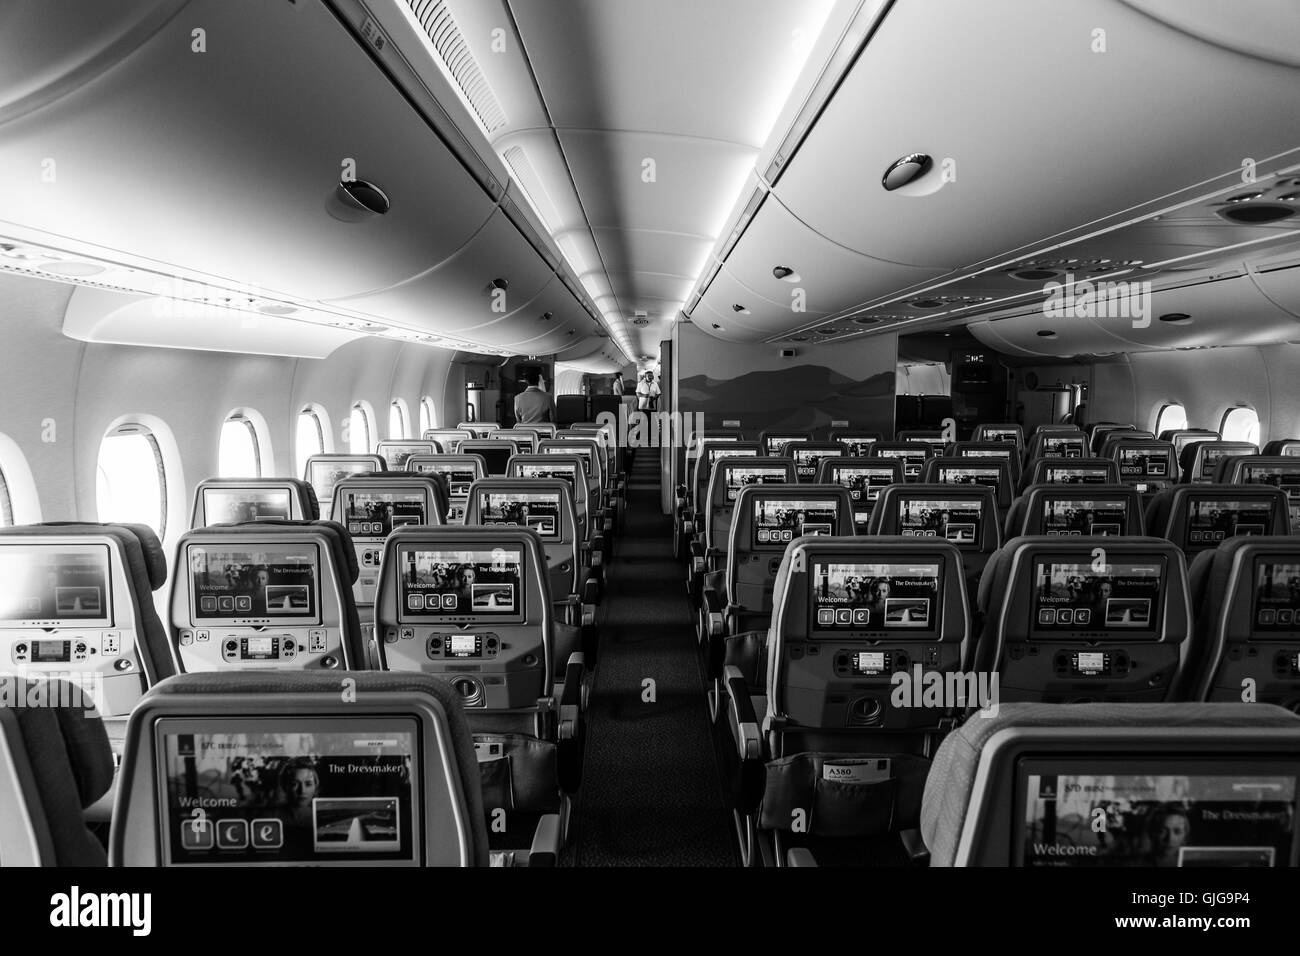 Interieur Airbus A380 Airbus A380 Interior Stock Photos And Airbus A380 Interior